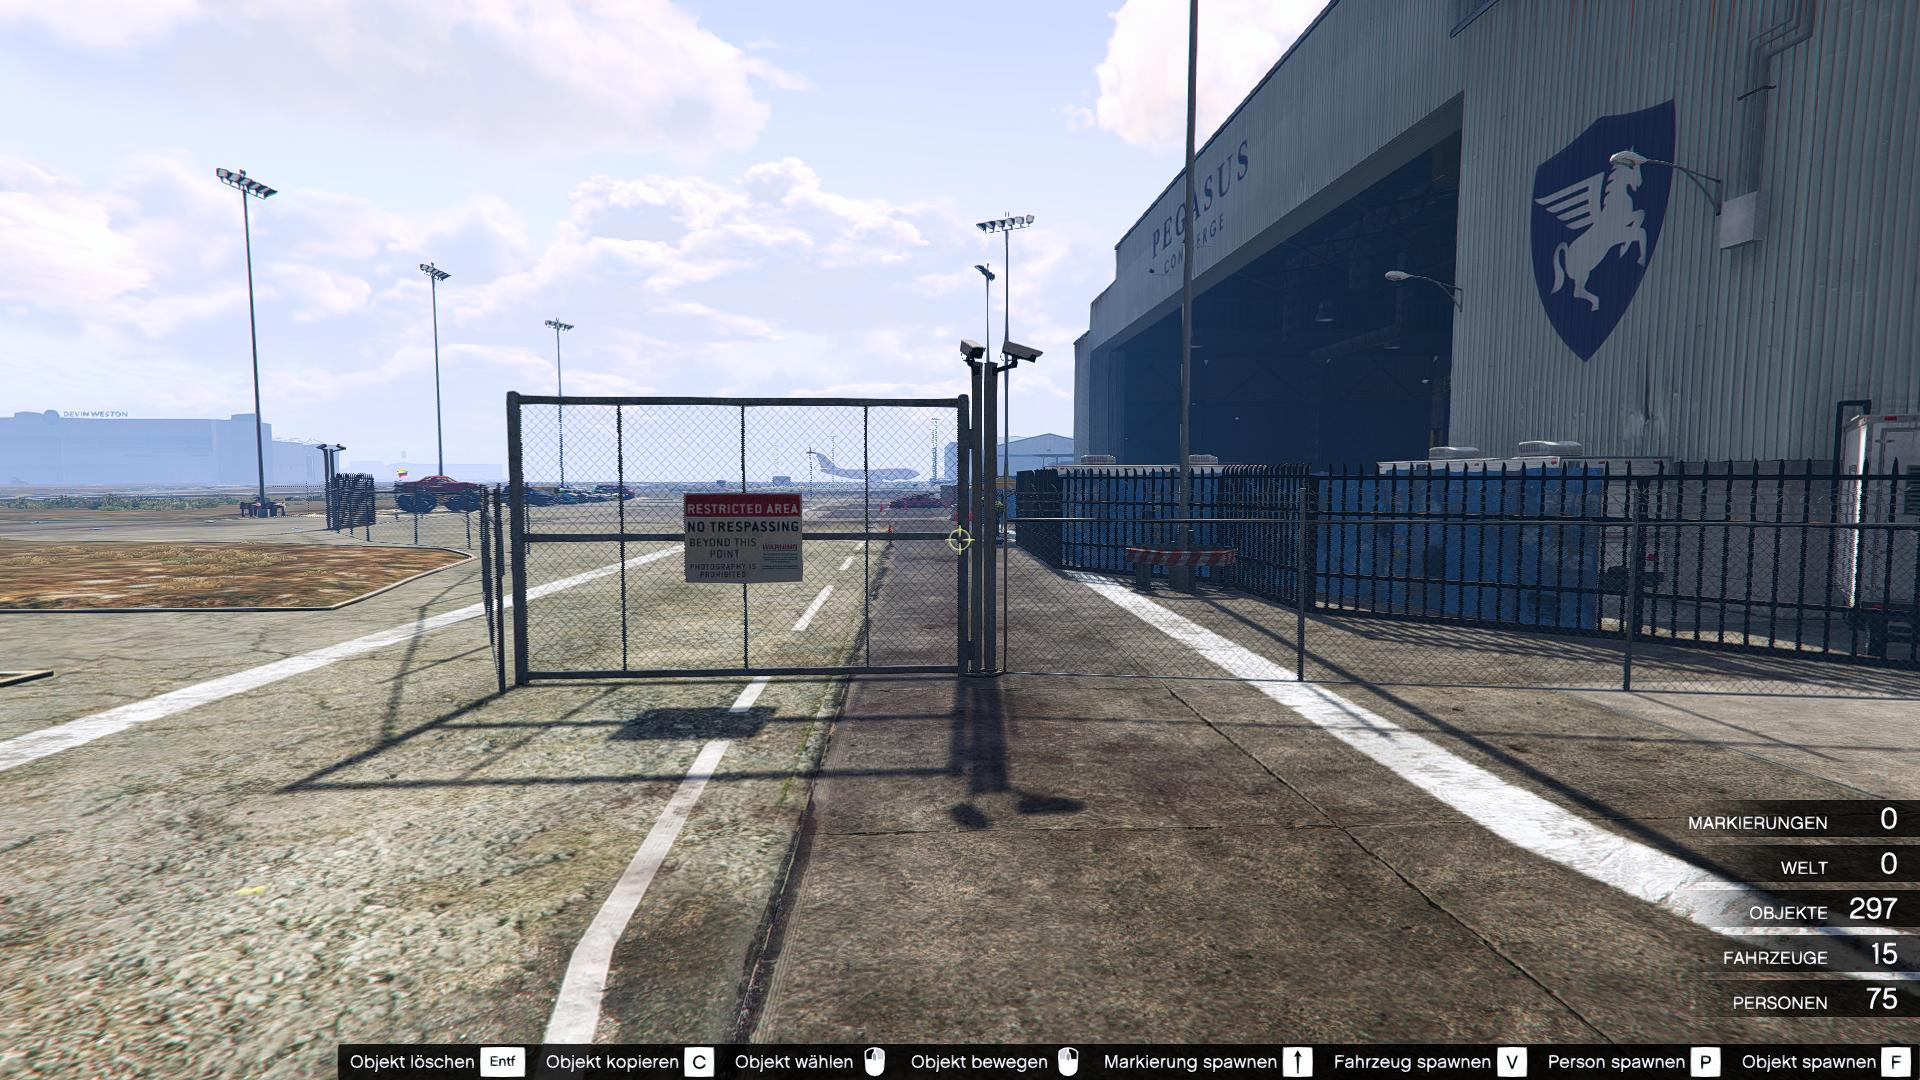 how to change hangar acceaories in gta